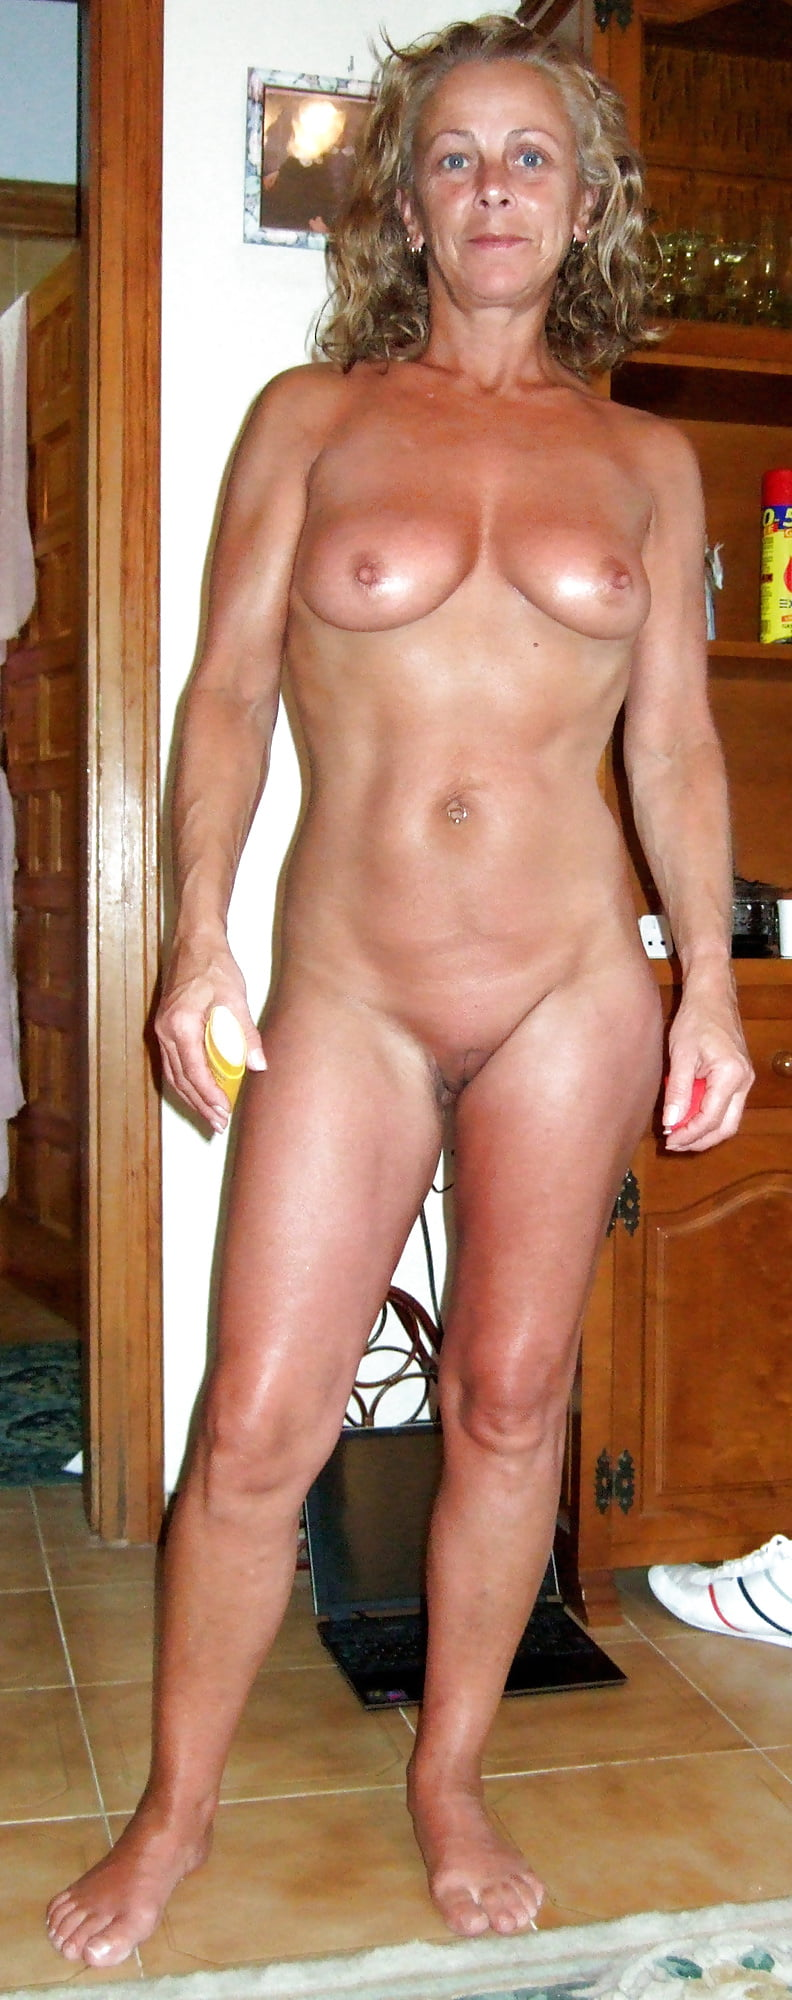 Nude amature women with great ties abs — 15